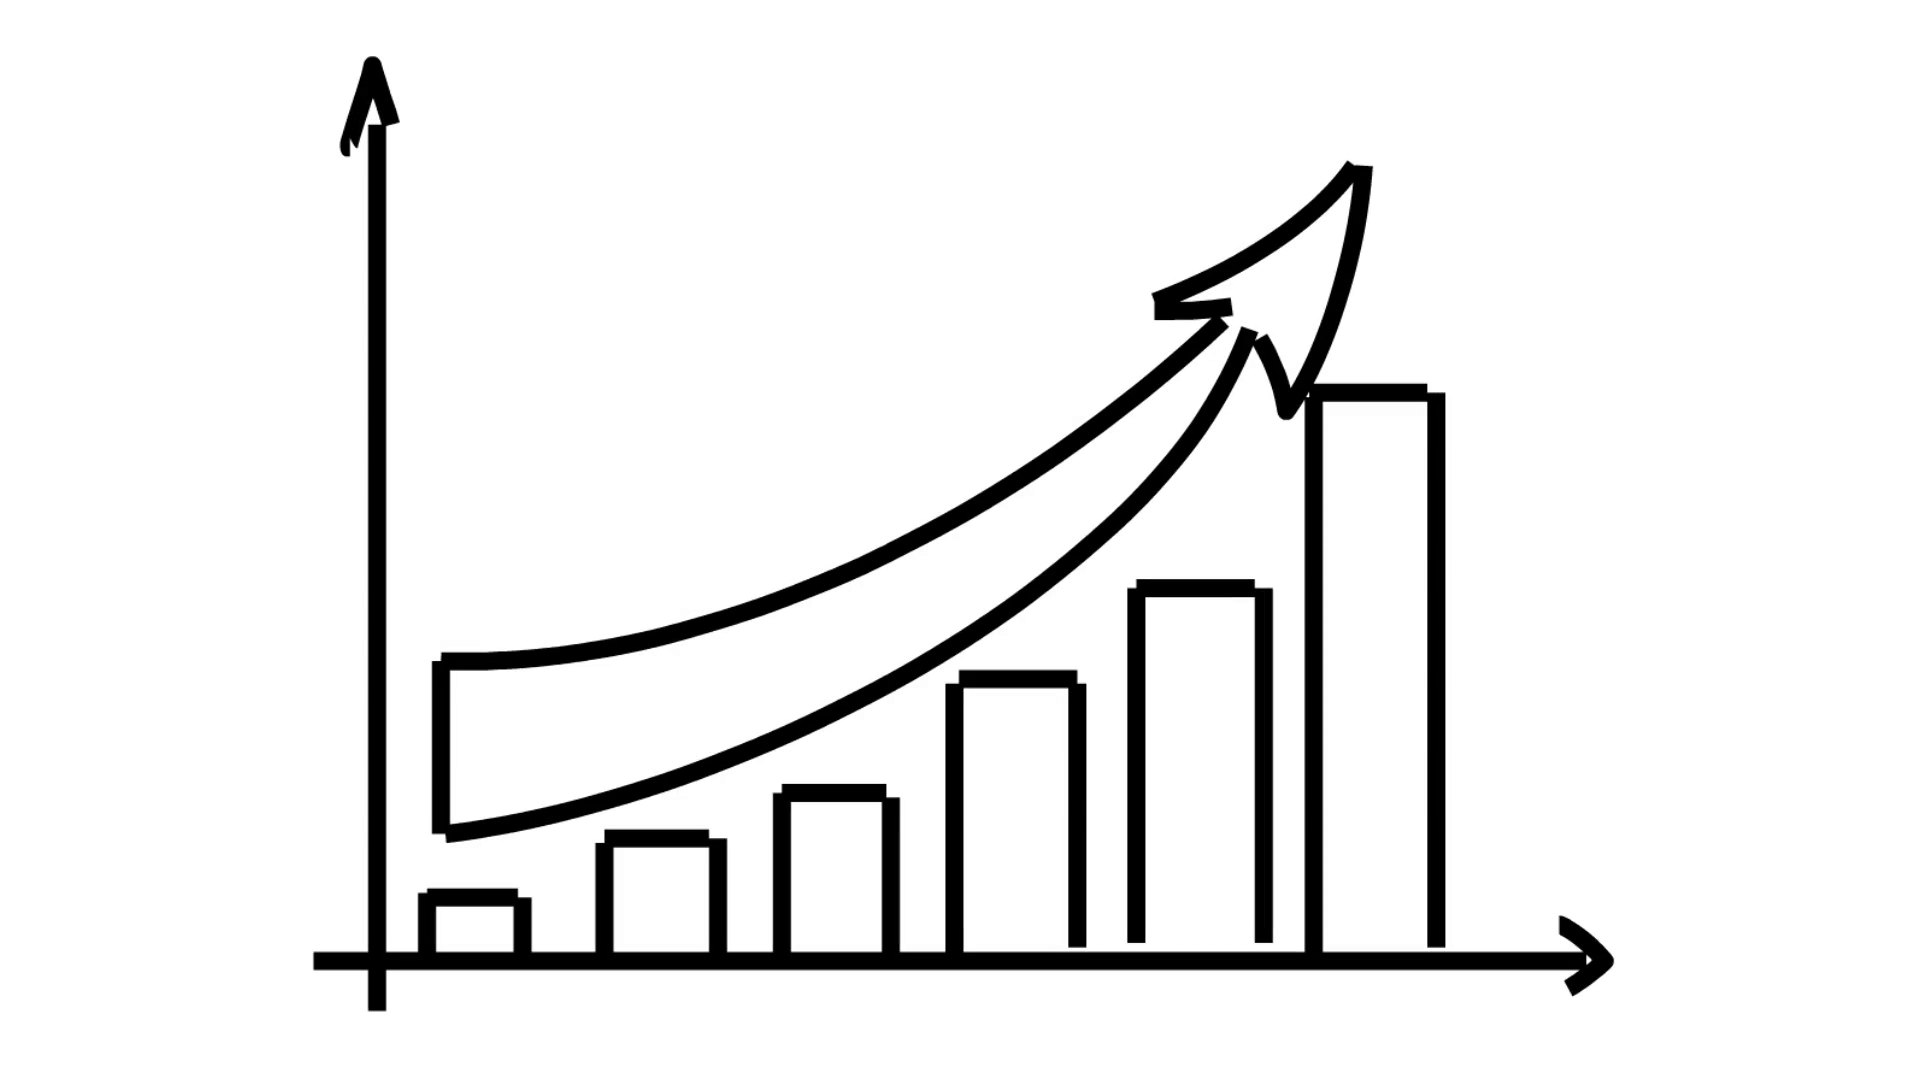 Bar Graph Arrow Going Up Line Drawing Illustration